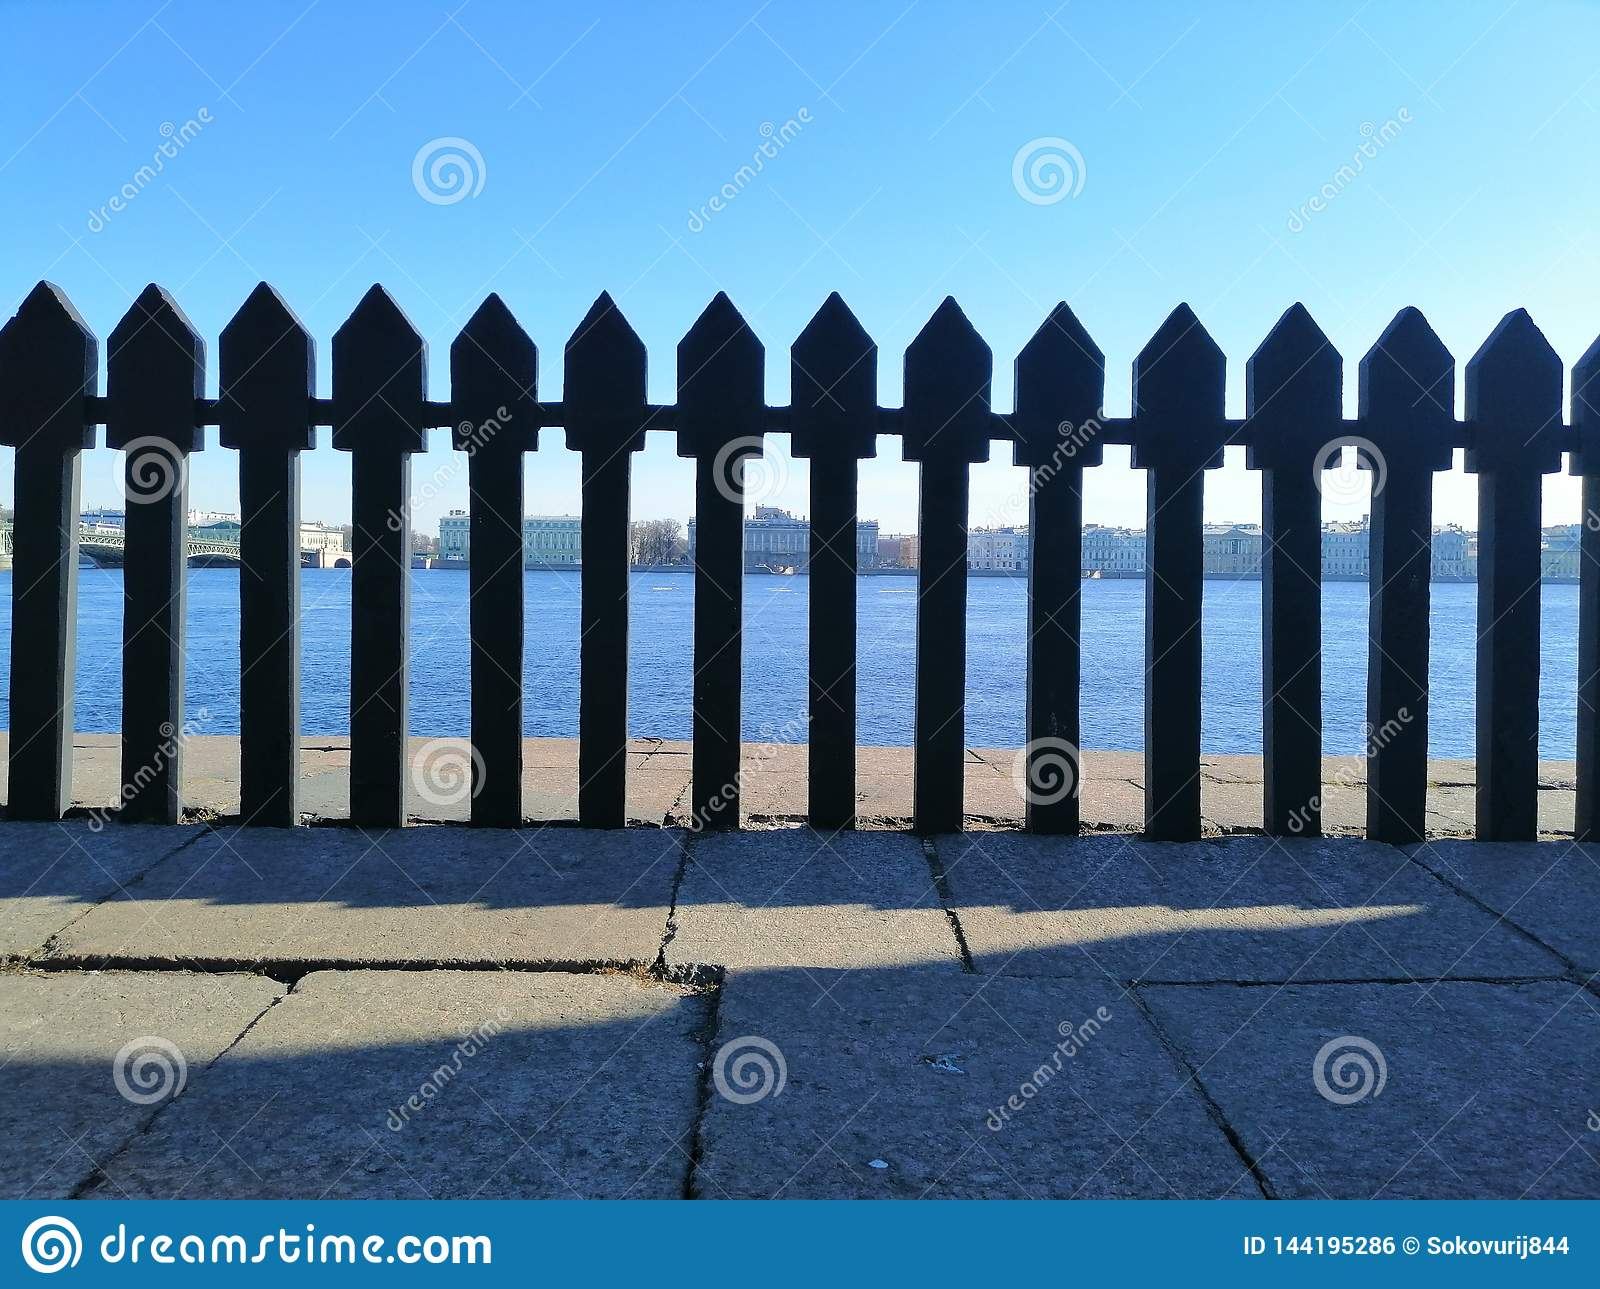 View of the opposite shore through the  fence